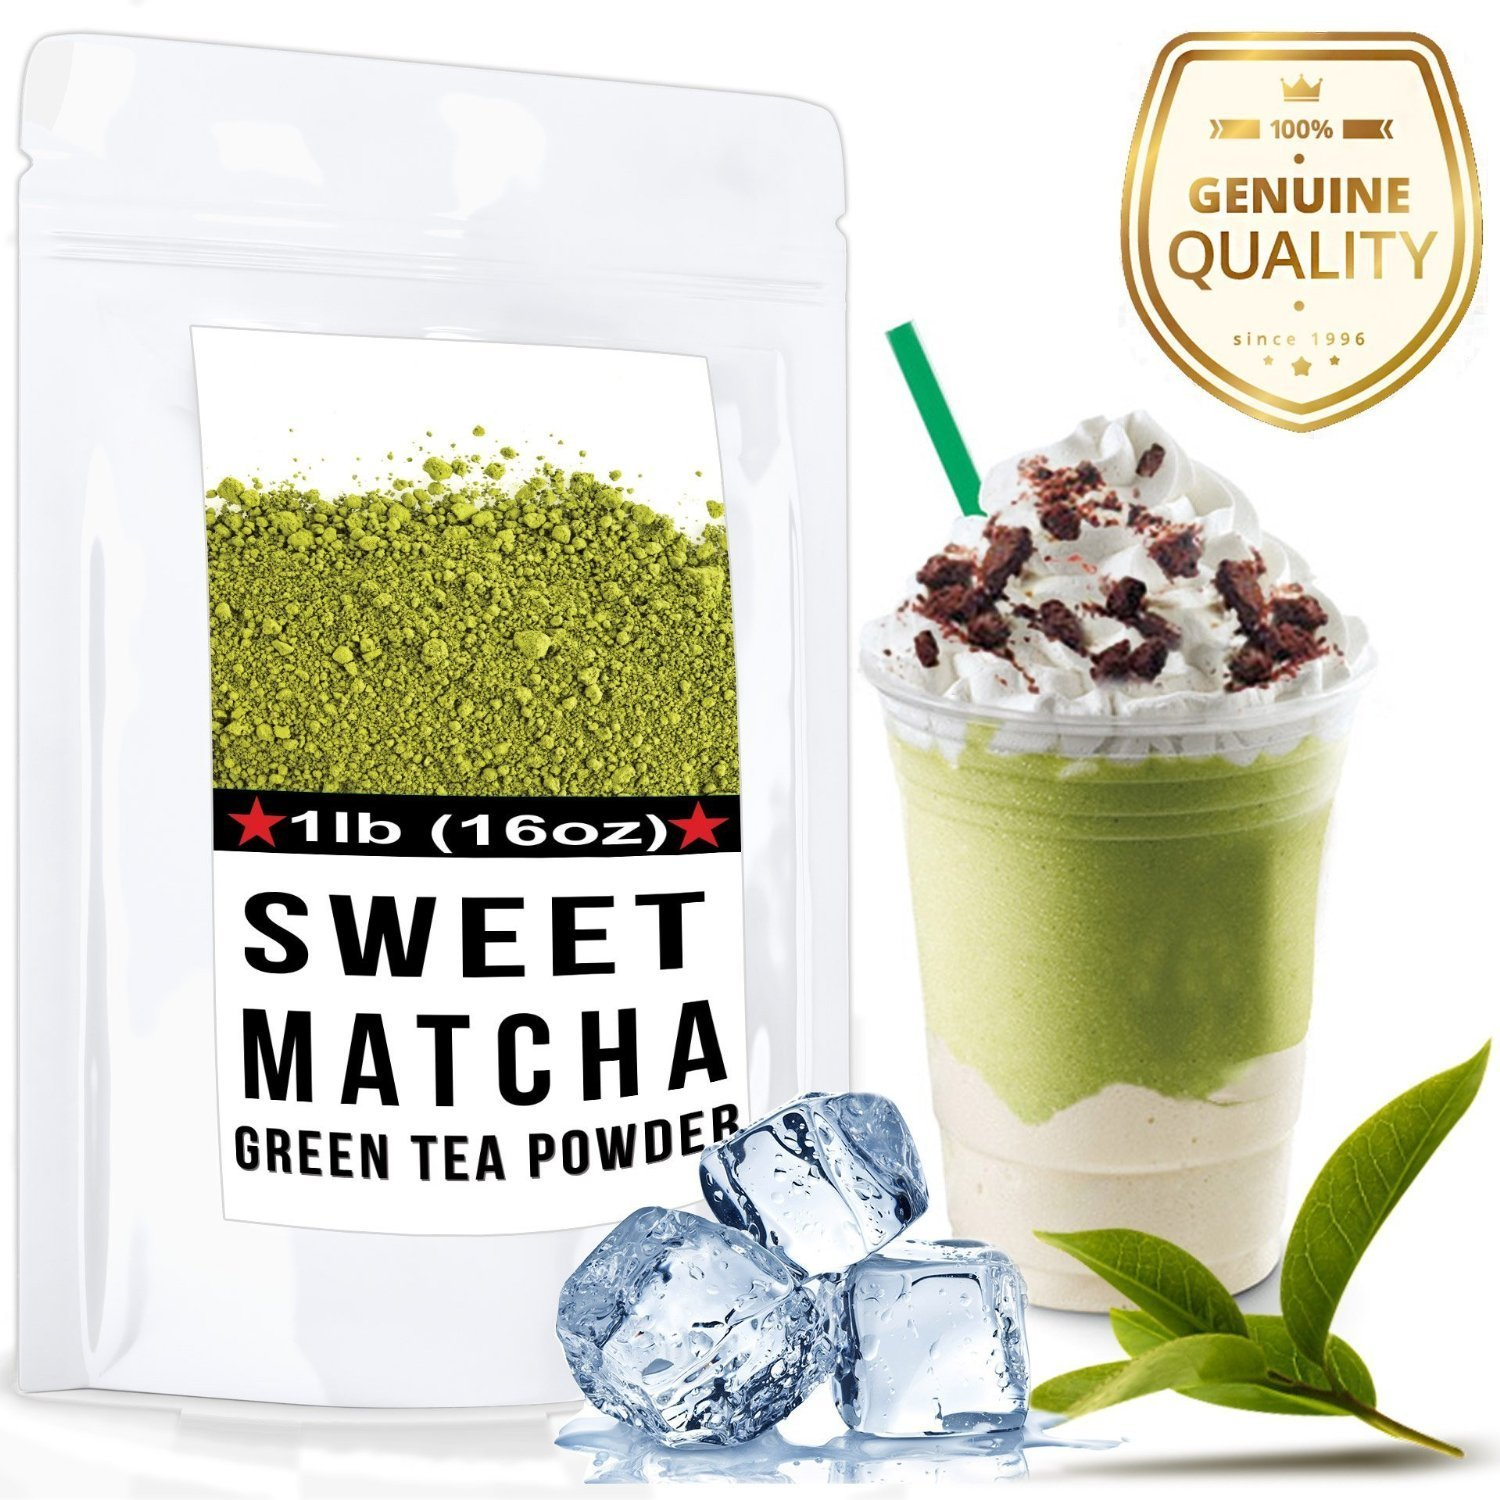 Sweet Matcha (16oz) High Quality Green Tea Powder Mix- Made with 100% Organic Matcha - Perfect for Making Green Tea Latte or Frappe - 30 Servings